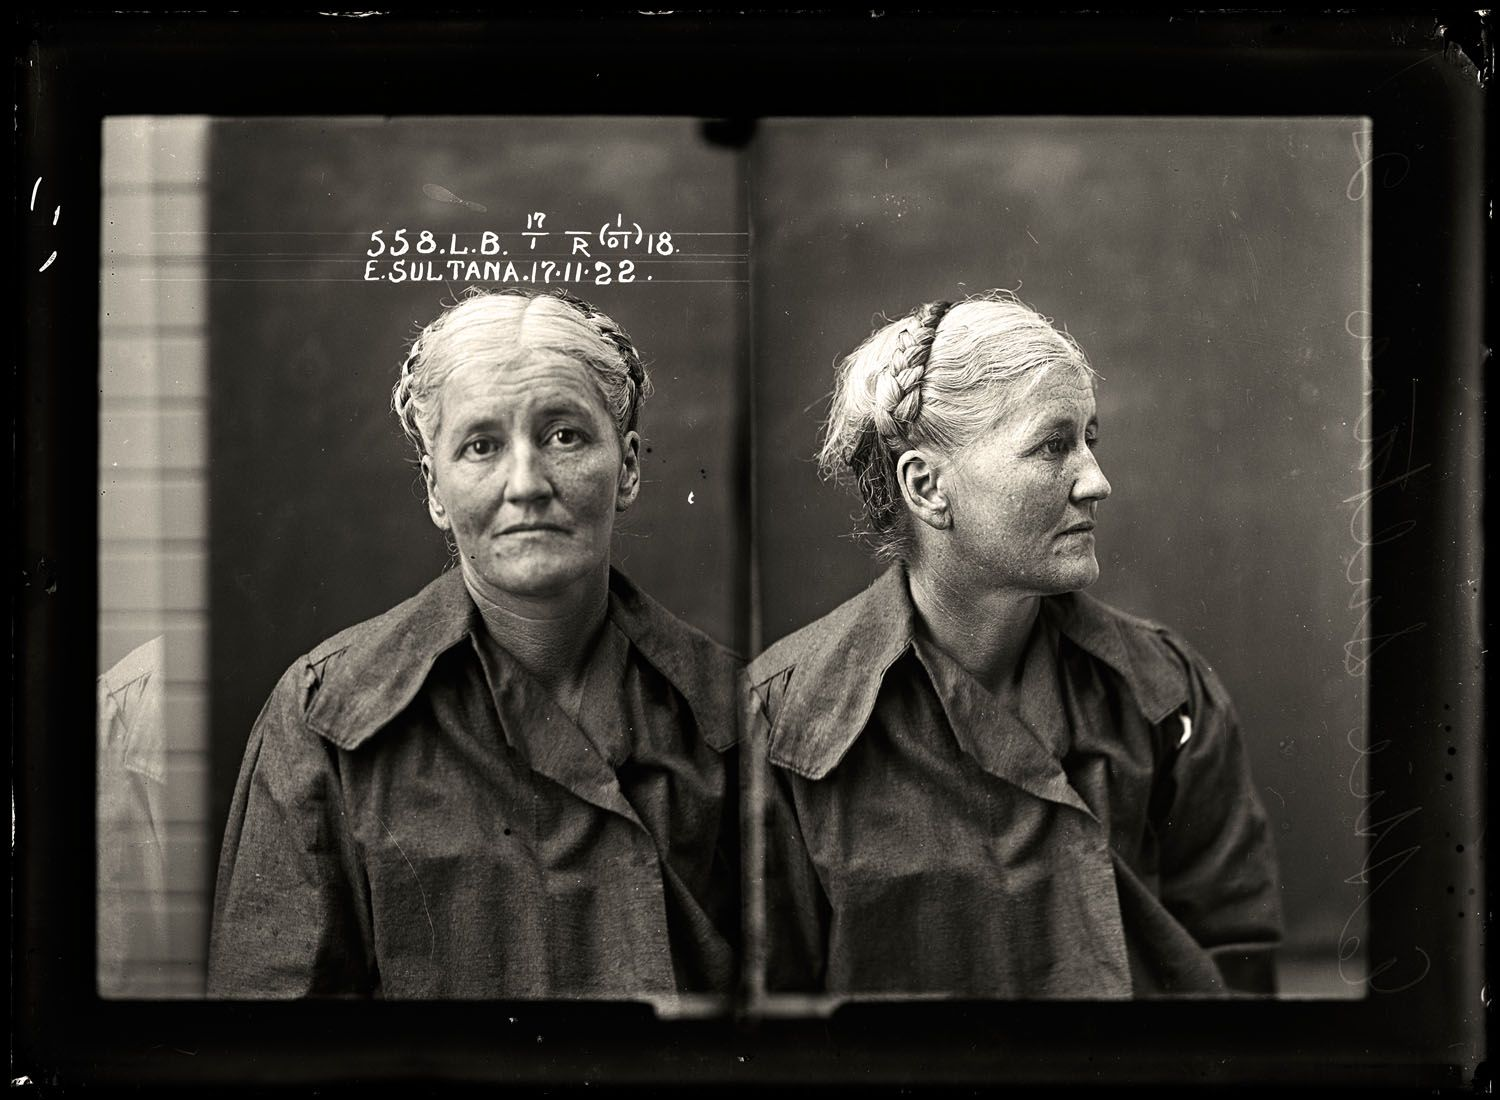 Ettie Sultana, criminal record number 558LB, 17 November 1922. State Reformatory for Women, Long Bay. Prostitute Ettie Sultana worked in northern New South Wales and in the Queensland cities of Brisbane and Toowoomba for most of her career. She had multiple convictions for prostitution, theft, drunkenness, swearing and vagrancy. She was sentenced to six months with hard labour.